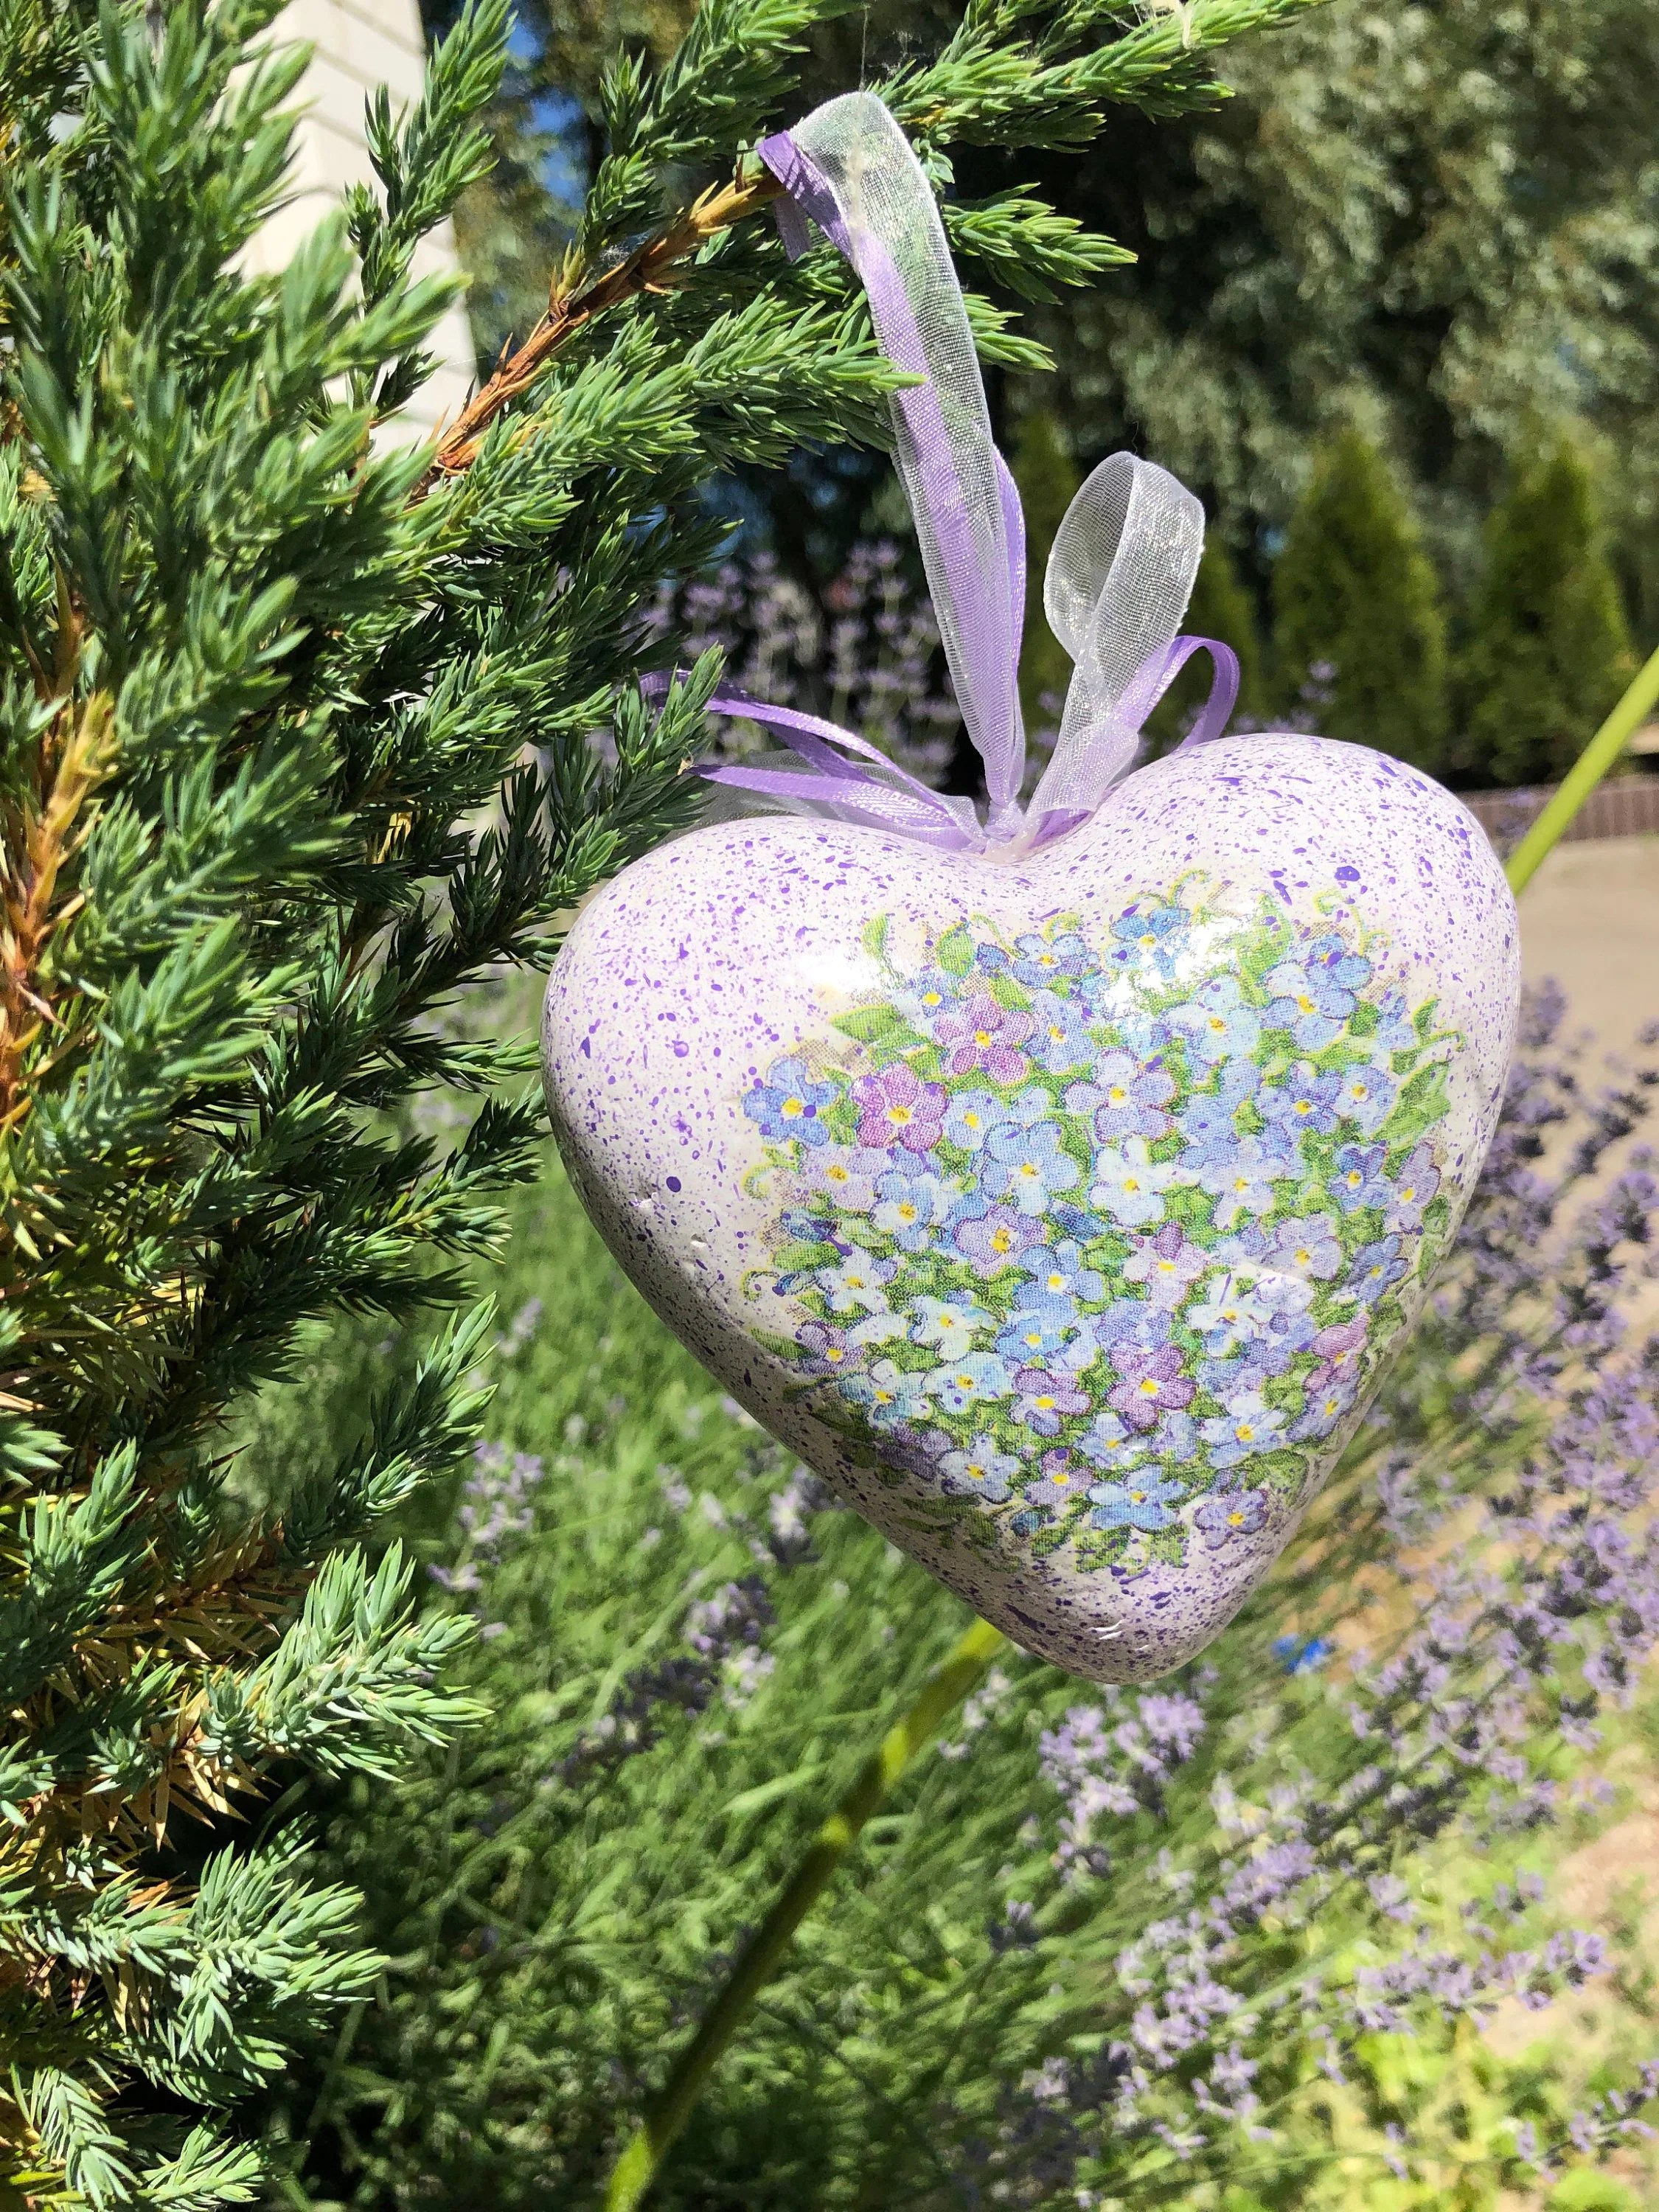 Provence Decoration Vintage Lavender Heart Of Foam Decorated Provence Flowers Artificially Aged In Decoupage Technique On Ribbons Accessory For Wall Or Window